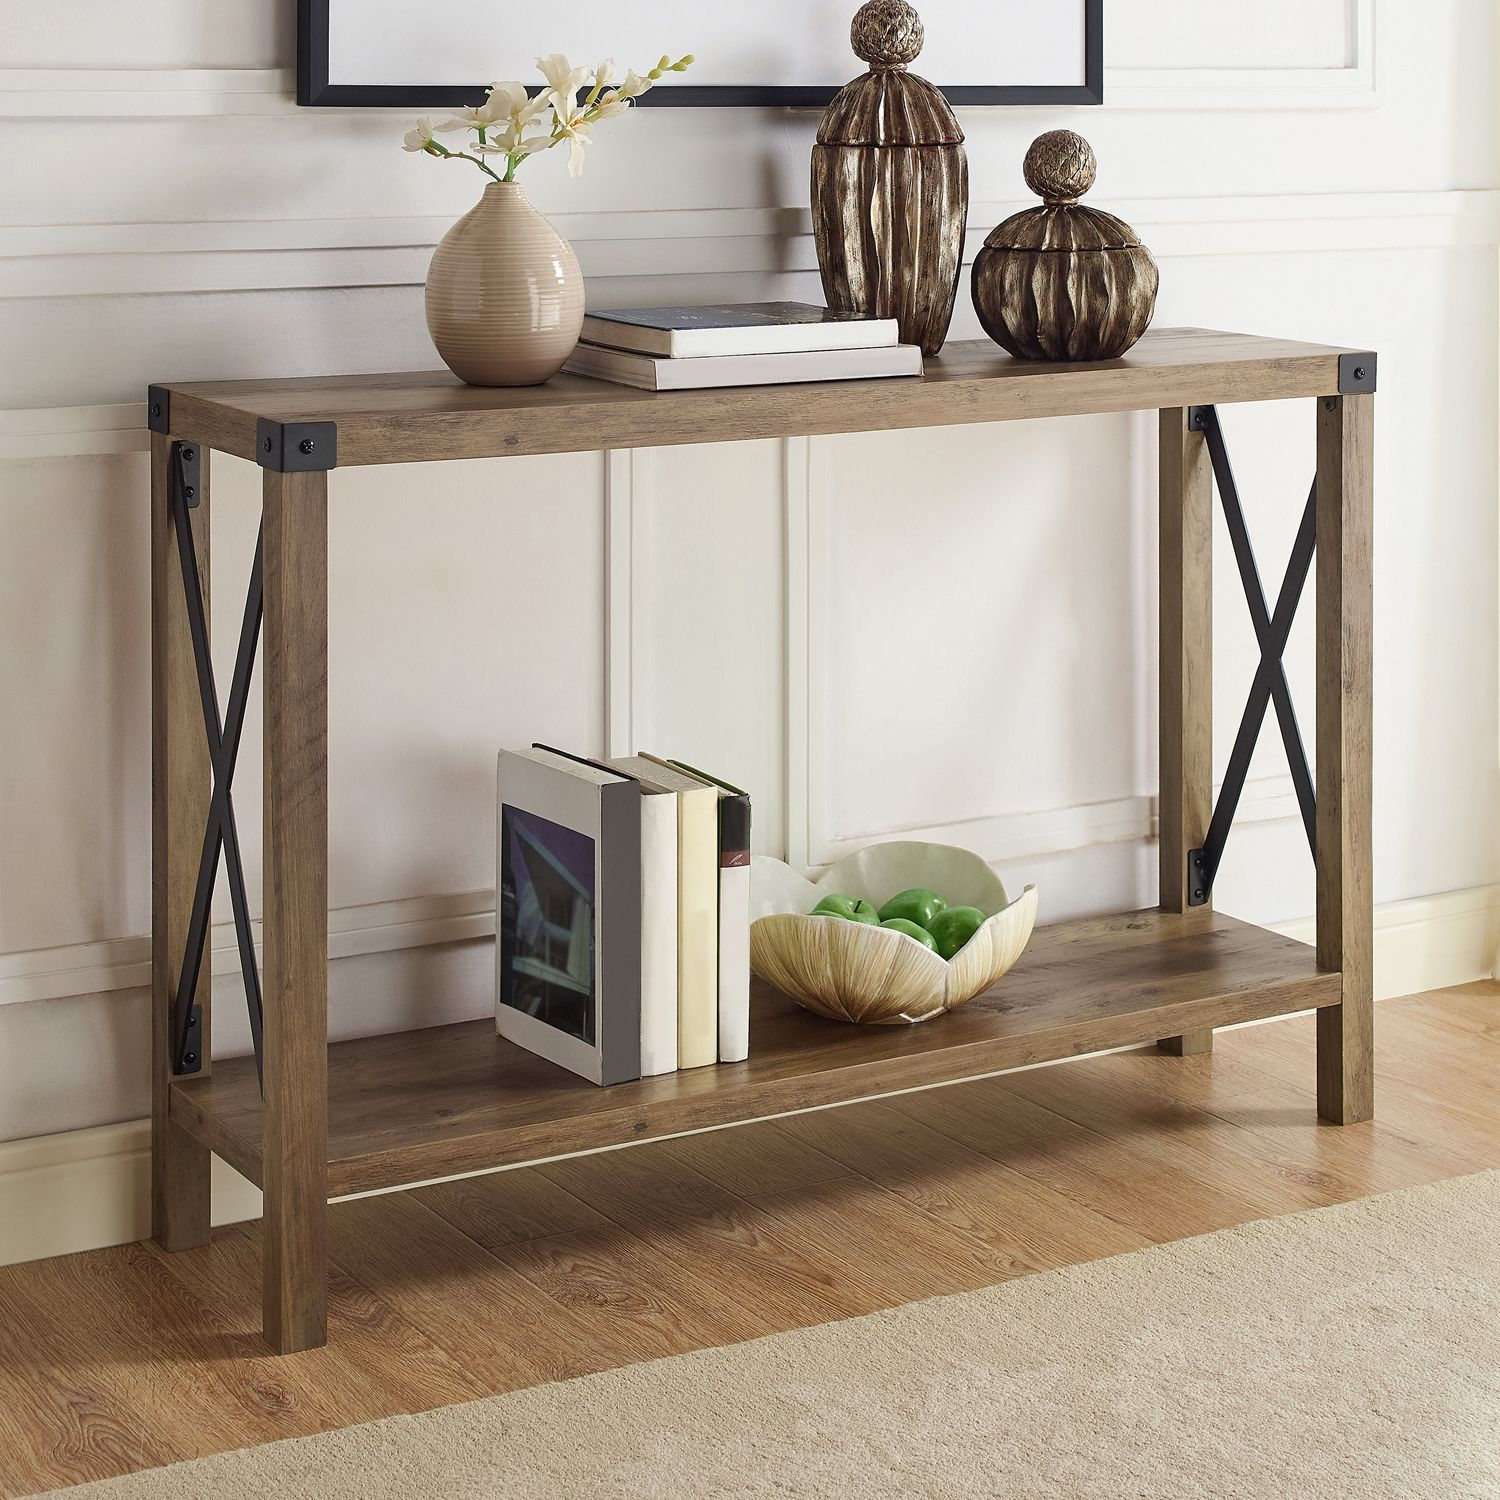 Null Farmhouse Console Table Rustic Console Tables Console